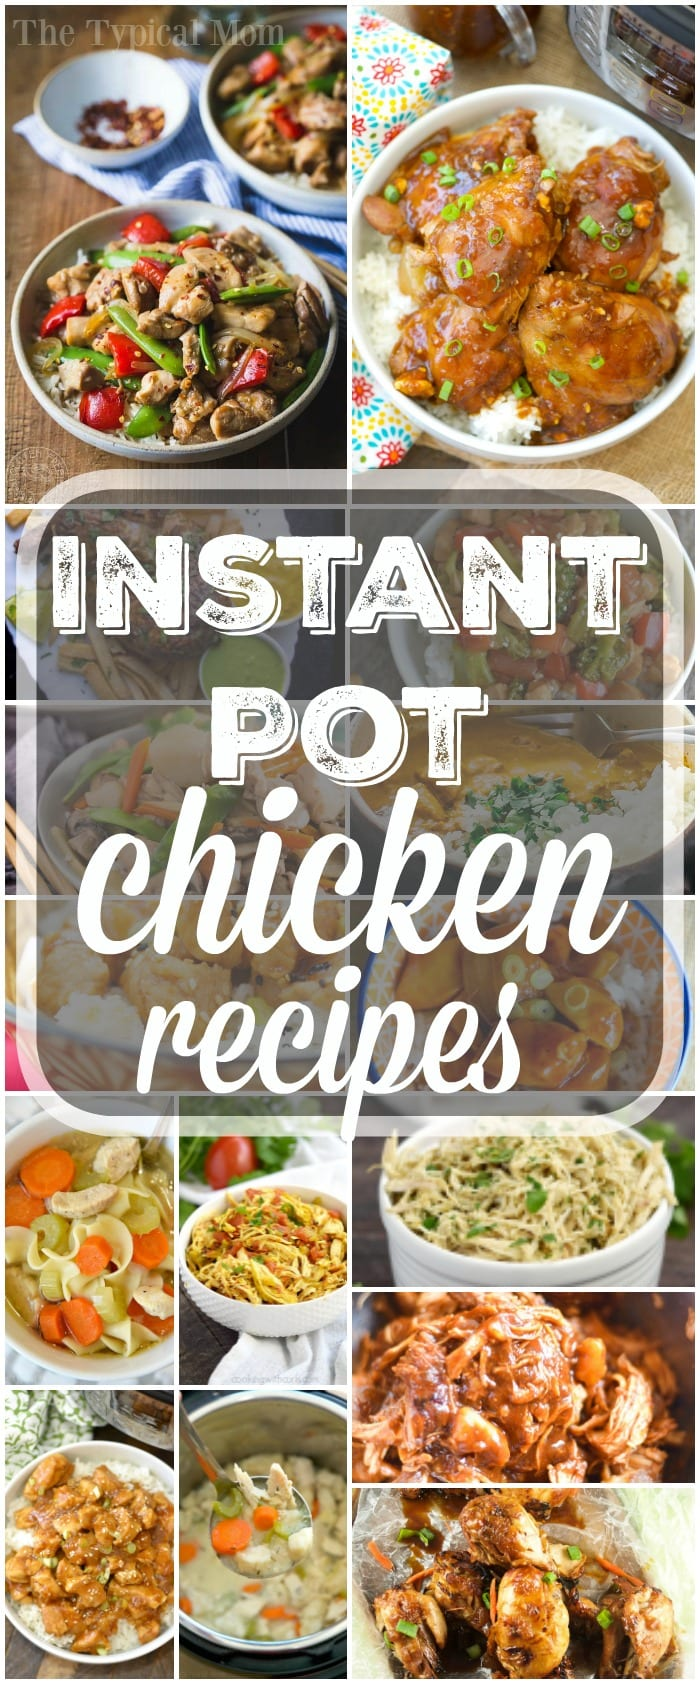 Here's a bunch of easy Instant Pot chicken recipes you can make for dinner! We love this fancy pressure cooker and chicken can be cooked in no time at all. We have made frozen chicken in the Instant Pot too! Check out this long list of really healthy meals your family will love. #instantpot #pressurecooker #chicken #healthy #recipes #best #simple #easy #dinners #thetypicalmom